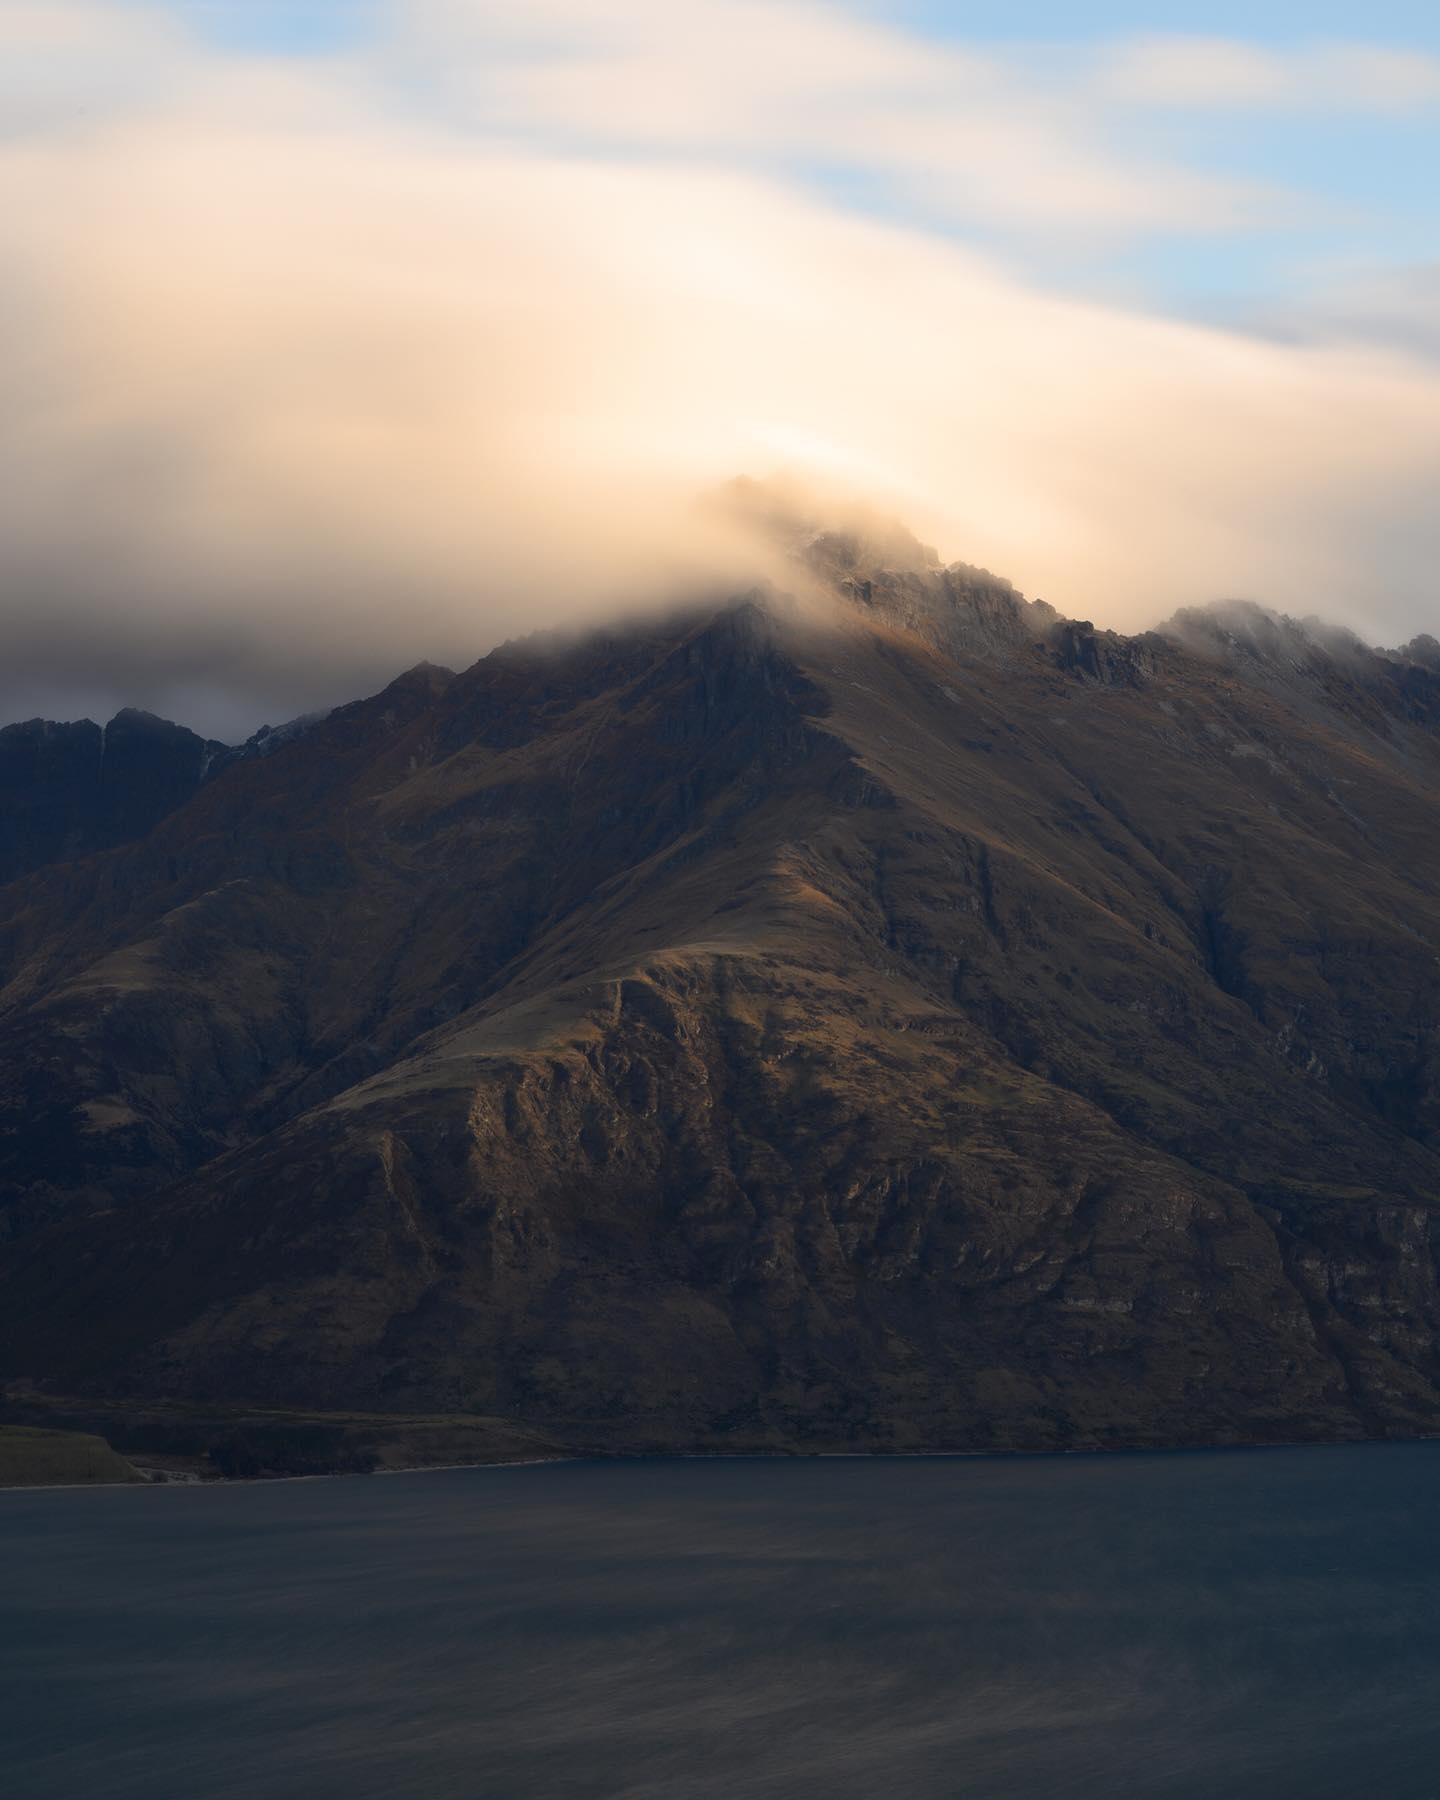 Sunset view of Walter Peak and Lake Wakatipu in Queenstown. The elevated and 360 views from @luc22alpineretreat located on Ben Lomond are simply breathtaking 🤩. A definite must stop place to stay in Queenstown 🏔  . . . . . #queenstown #queenstownlive #lakewakatipu #walterpeak #nzmustdo #purenewzealand #exploremore #ignewzealand #winter #nzgeophoto #nz #nouvellezelande #nztravel #nzgeo #nikonnz #queenstownnz #southisland #nzlandscapes #discovernz #southernalps #adventure #nzlandscapephotography #nztravelmagazine #nzdailyshot  #airbnbwithaview #airbnbnz